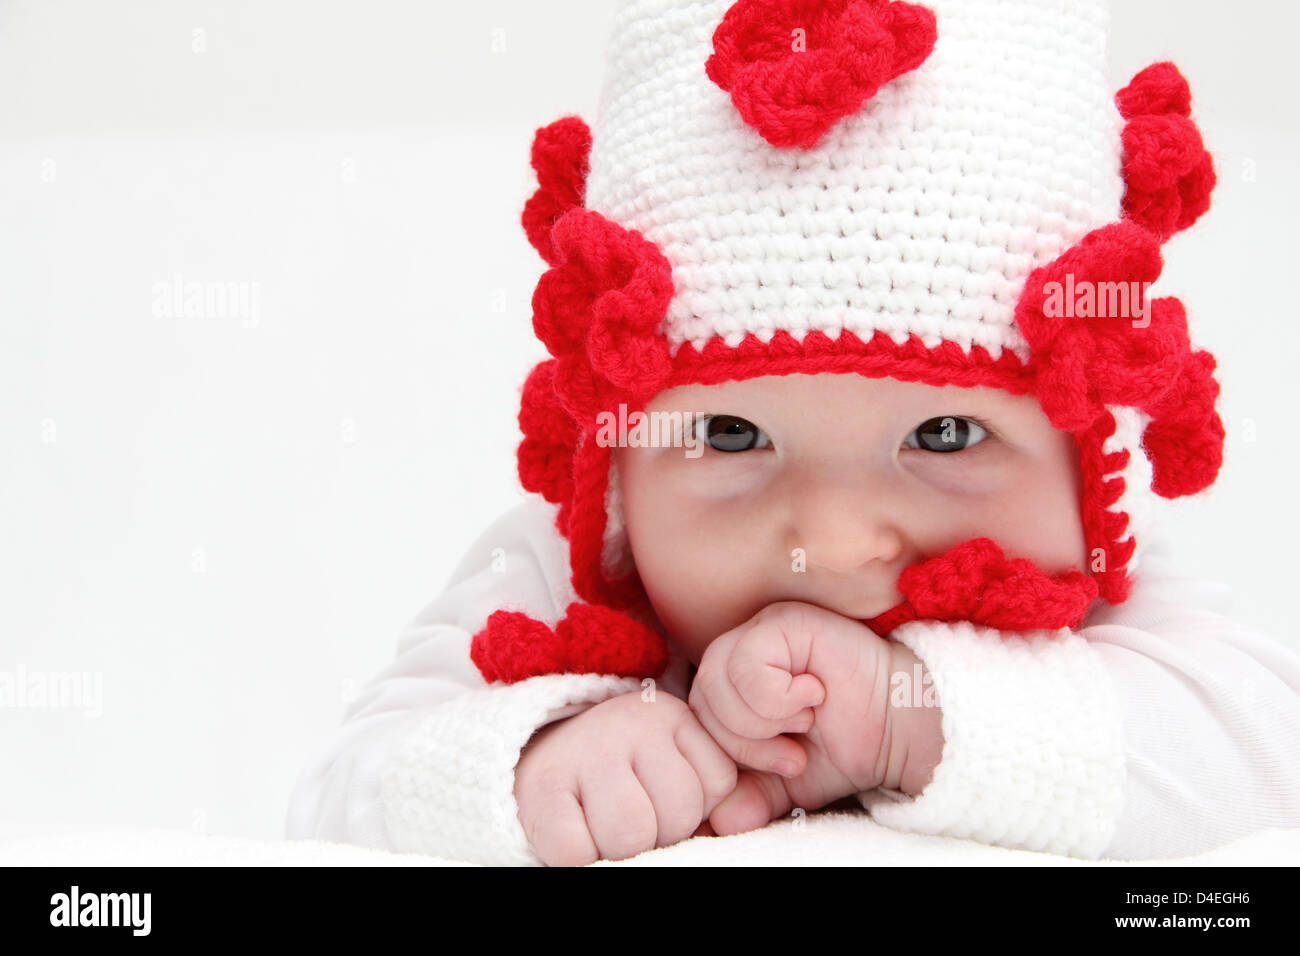 Little baby with knitted white hat baby on stomach - Stock Image